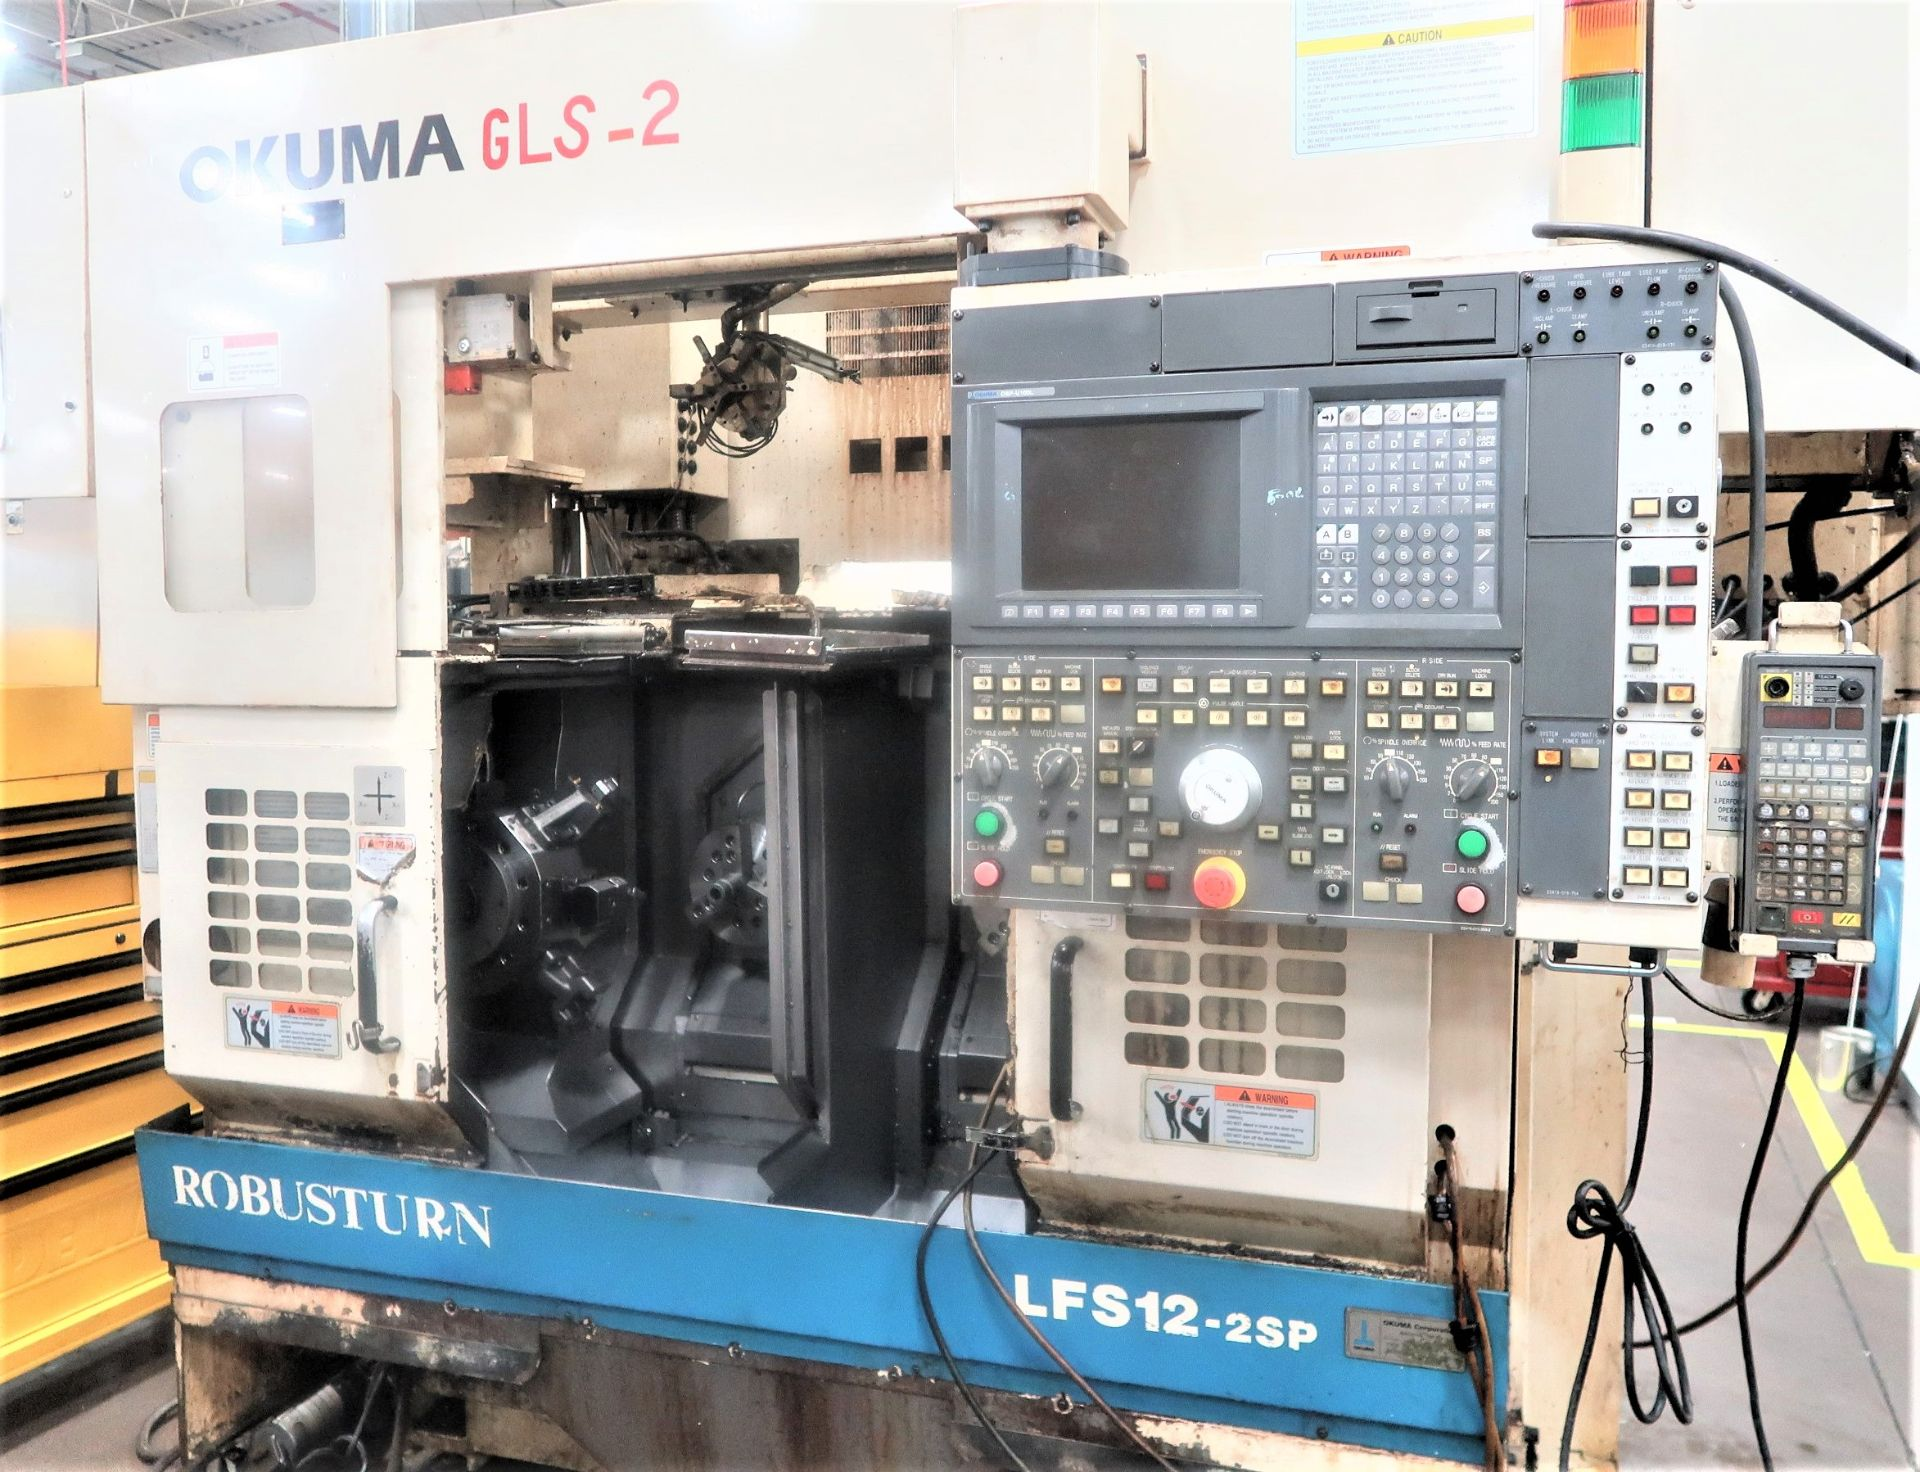 Lot 10F - OKUMA LFS-12 ROBUSTURN CNC TWIN SPINDLE WITH GANTRY LOADER TURNING CENTER CHUCKER LATHE